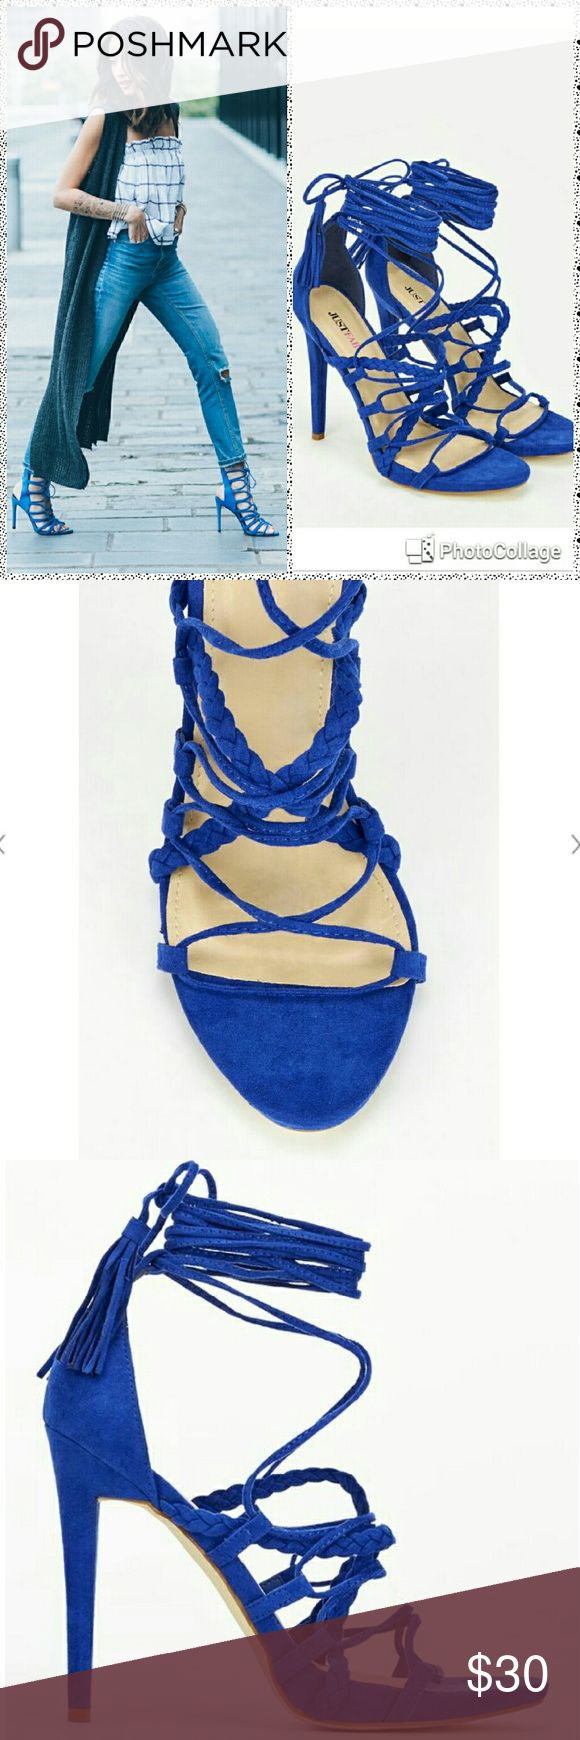 JustFab Chancy Royal Blue Strap up Heels JustFab Chancy Royal Blue Strap up Heels   Beautiful shoes I love them but they run small  I only worn them once but they just did not work out for me ;(   They are gorgeous and  super sexy   Heel is 4 in   I'm usually a size 7 1/2 they are size 8 bUT I will say they are more like a 7   LOWER PRICE ($25.00)  IN ♏ECARI  USE MY PROFILE NAME StylinIsMyPassion36  and use code QJDWCT JustFab Shoes Heels